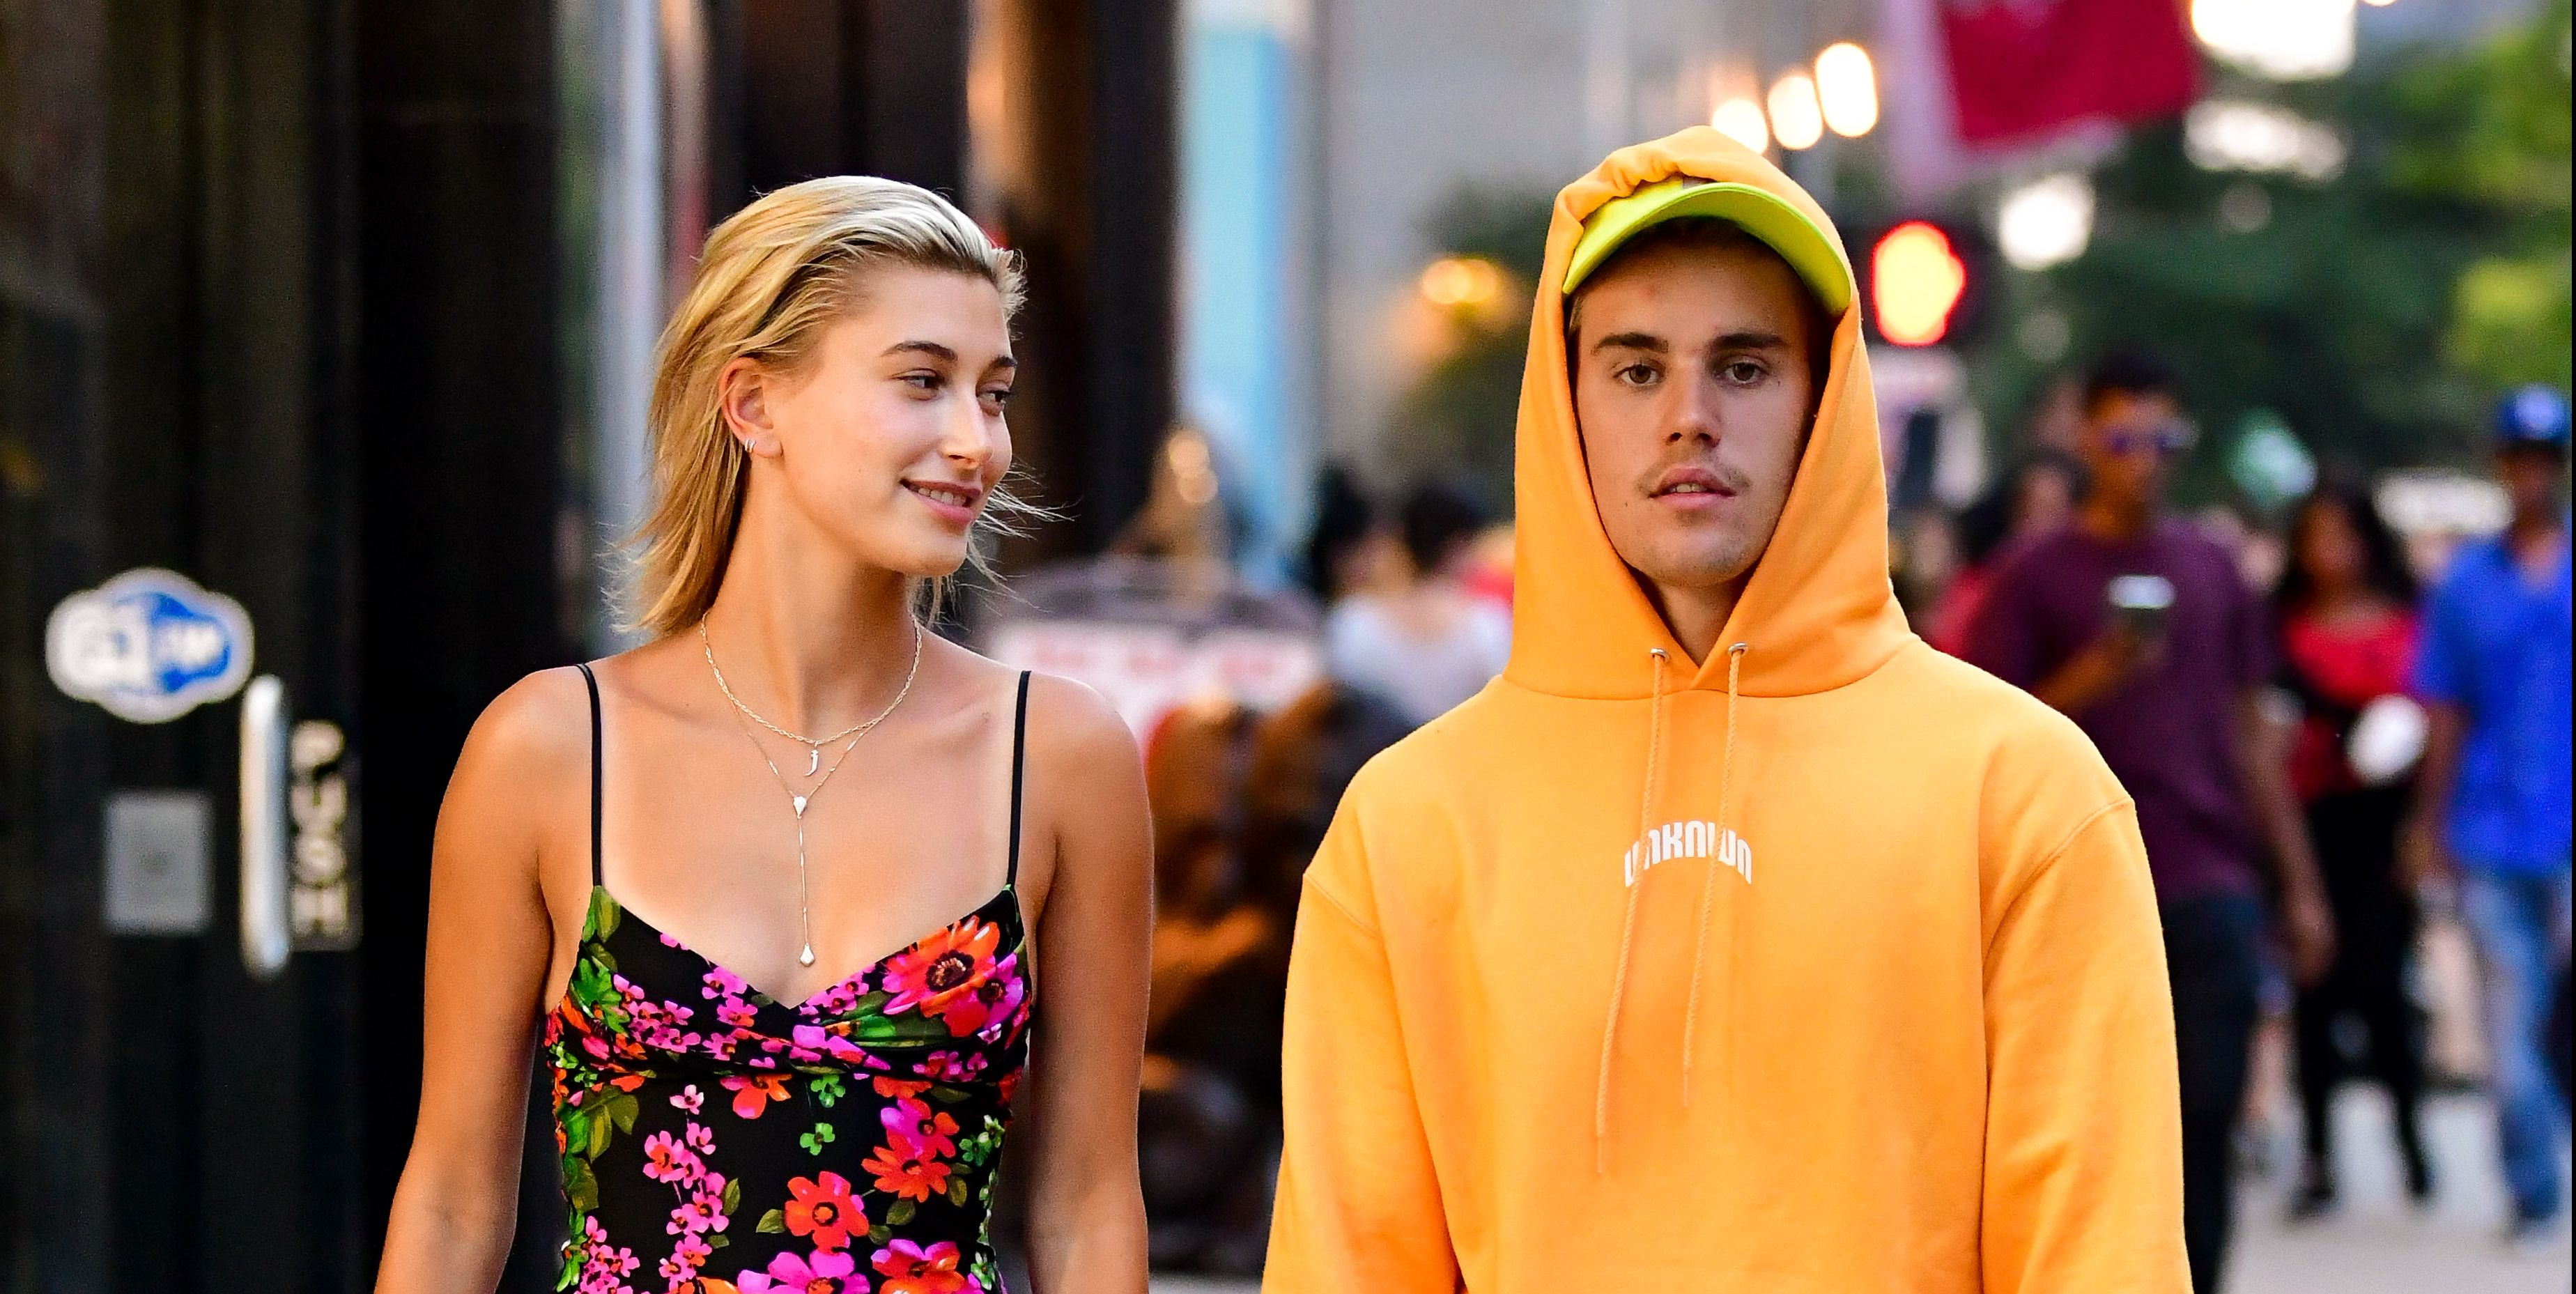 Justin Bieber is out here trolling Hailey Baldwin on Instagram